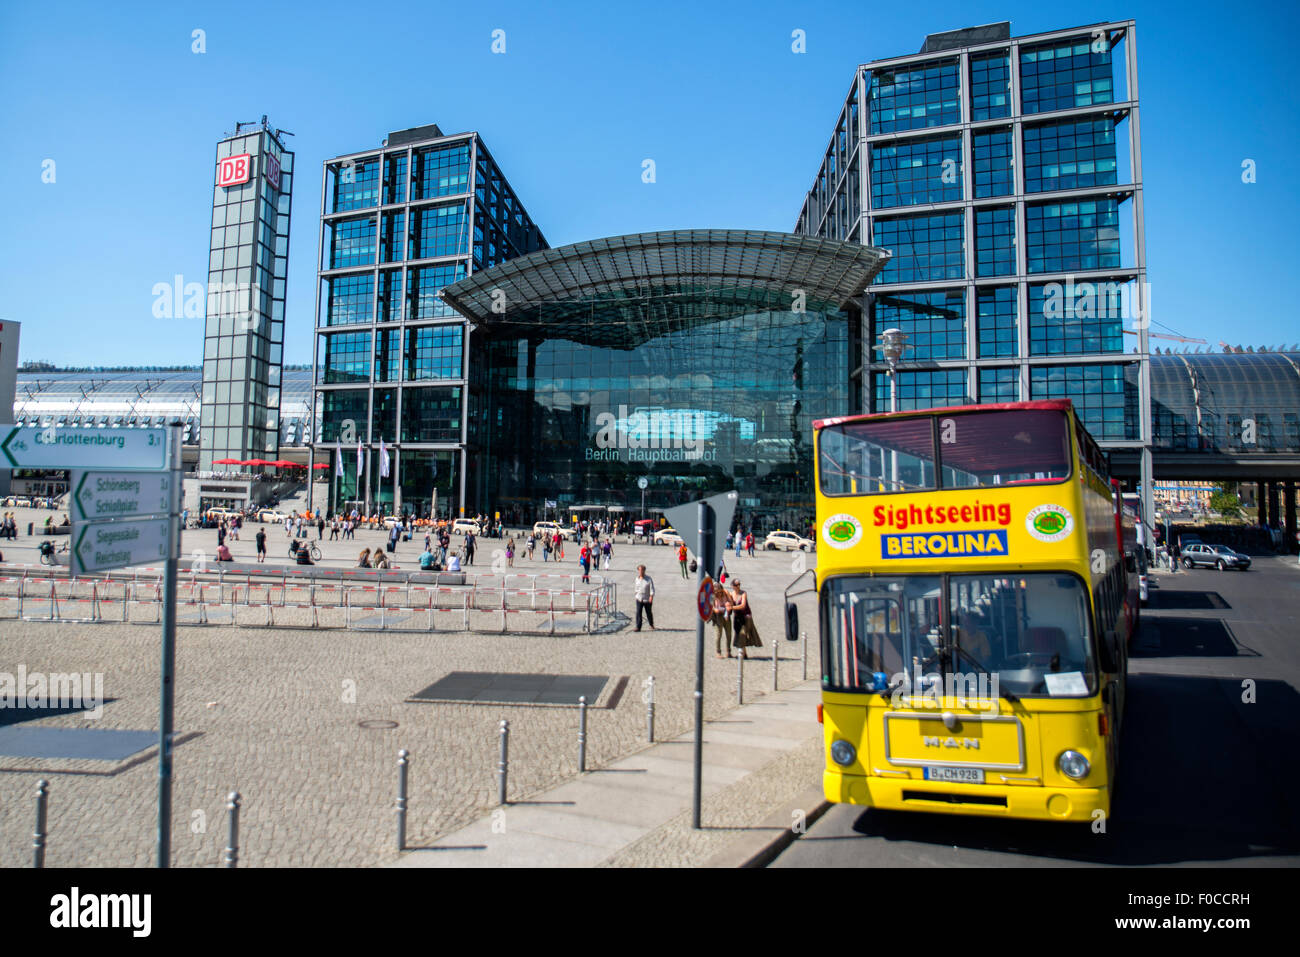 train bus station stock photos train bus station stock images alamy. Black Bedroom Furniture Sets. Home Design Ideas